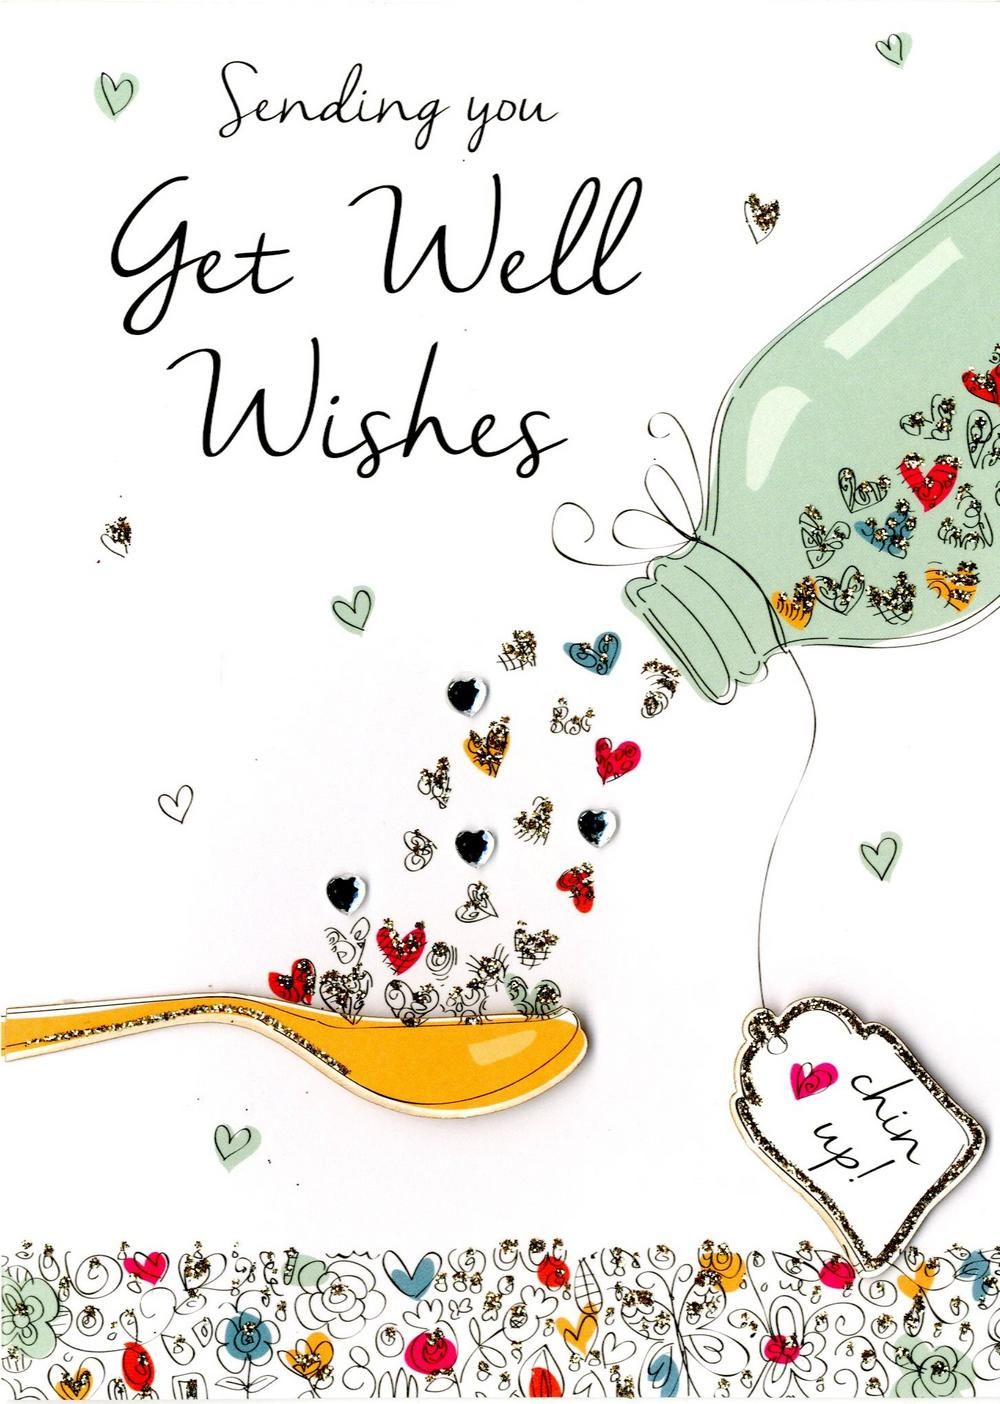 Get Well Wishes Greeting Card Get well wishes, Get well